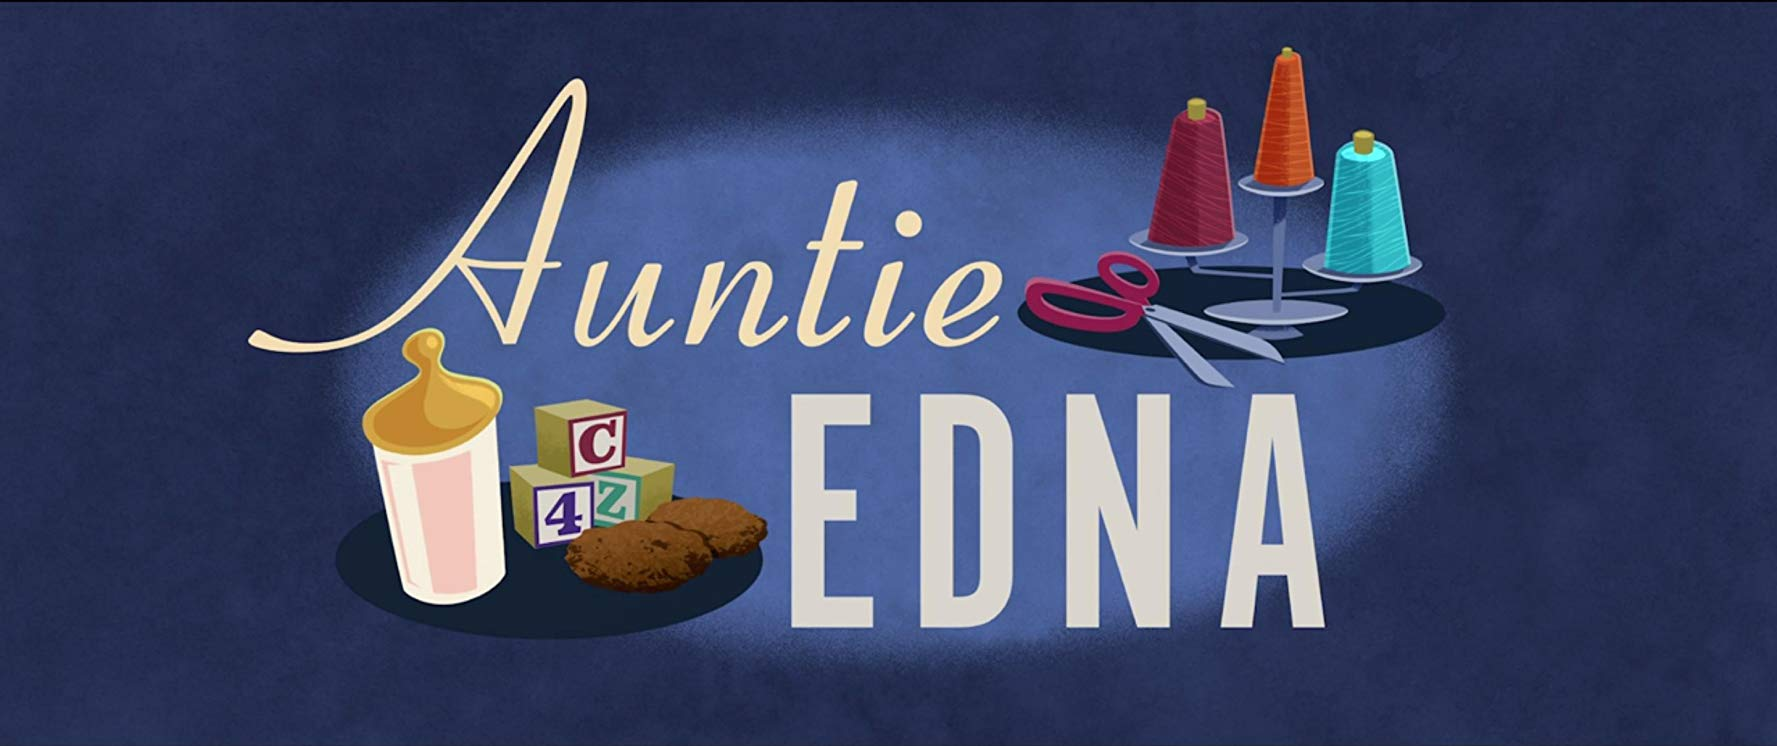 Auntie Edna 2018 720p BluRay x264-FLAME